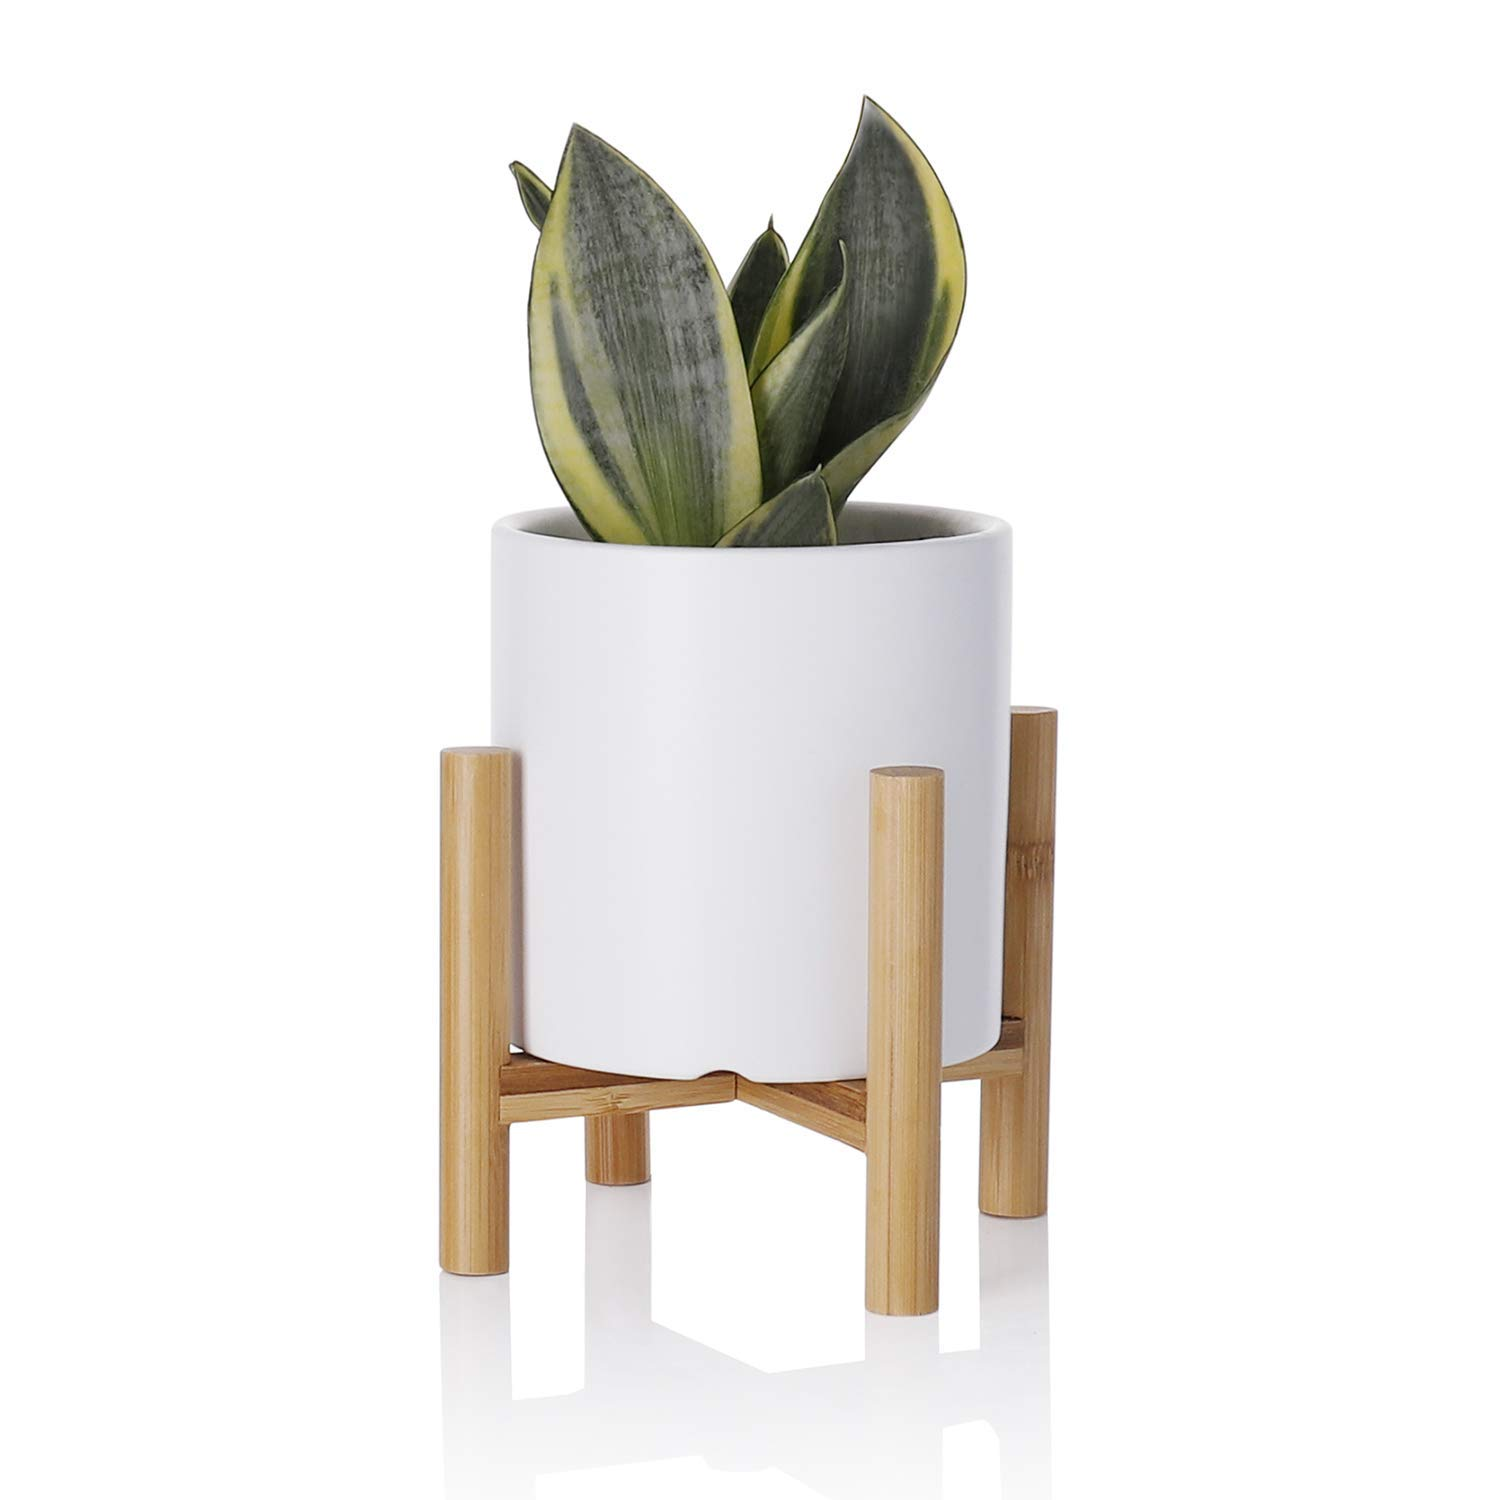 Greenaholics Succulent Pot - 4.3Inch Cylinder Matte Ceramic Succulent Planter with Bamboo Stand for Small Plant, Matte White